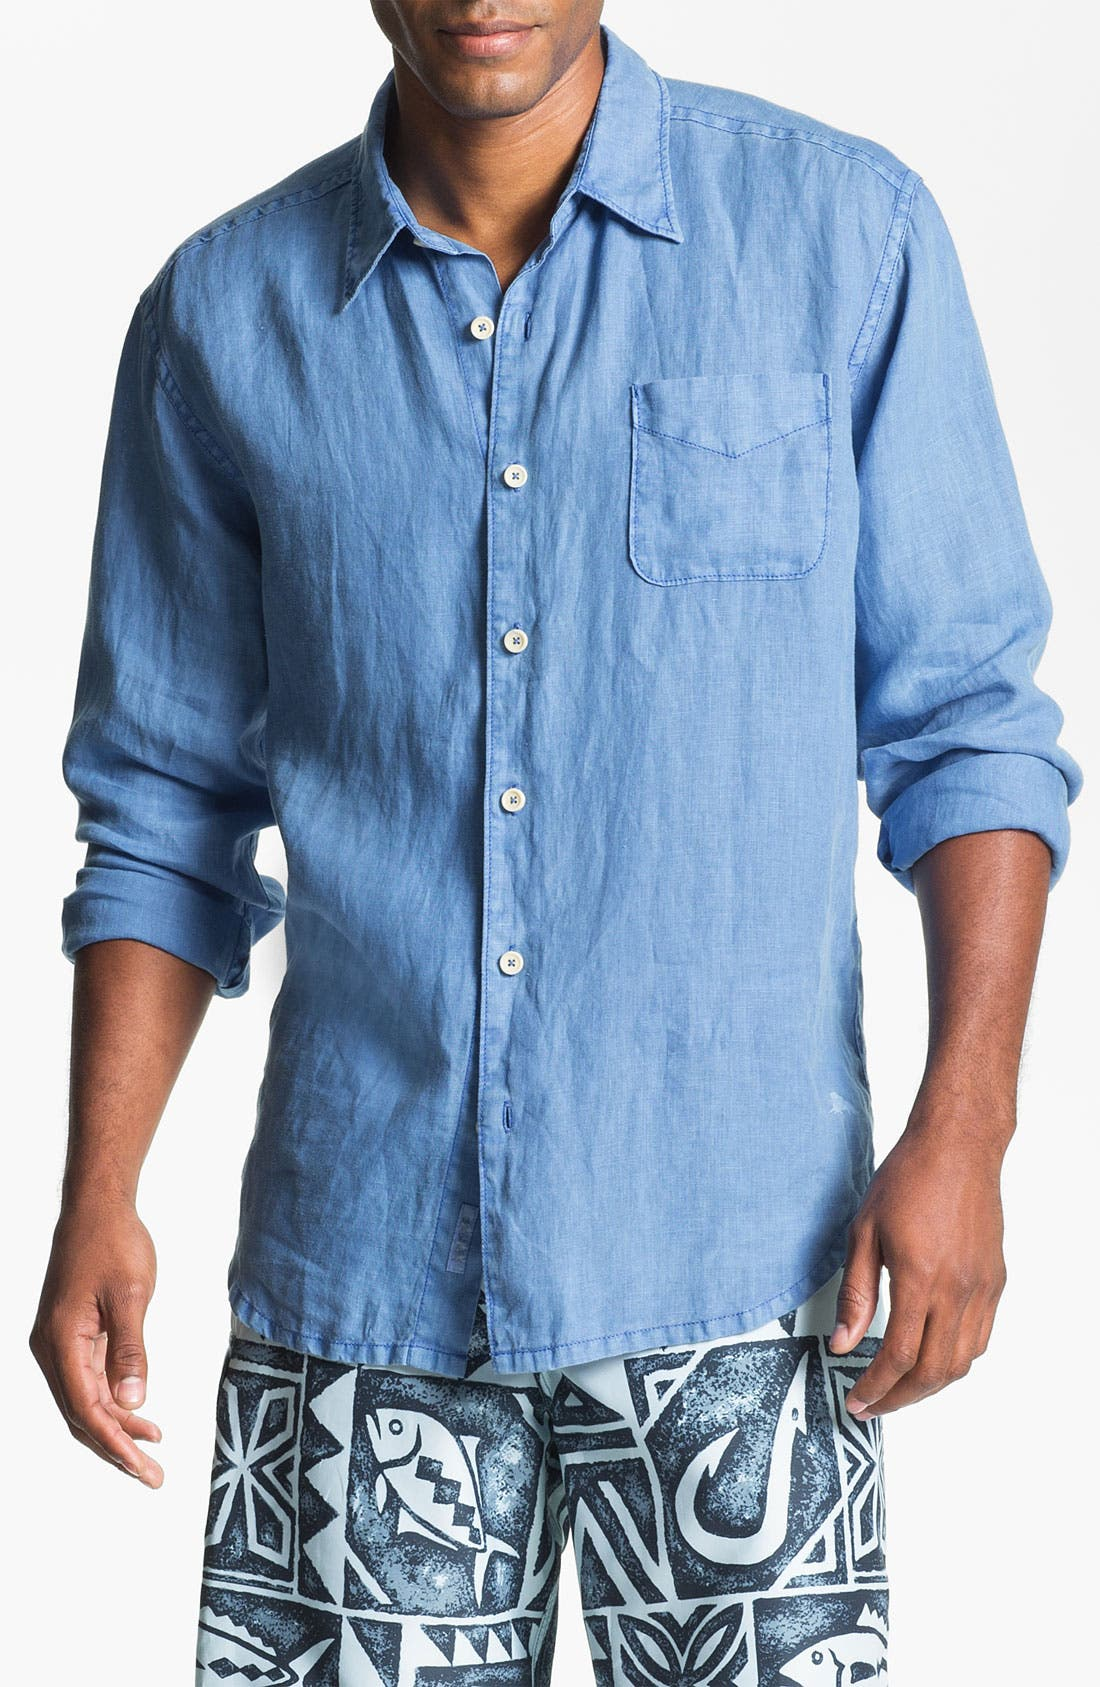 Alternate Image 1 Selected - Tommy Bahama Sport Shirt & Quiksilver Board Shorts